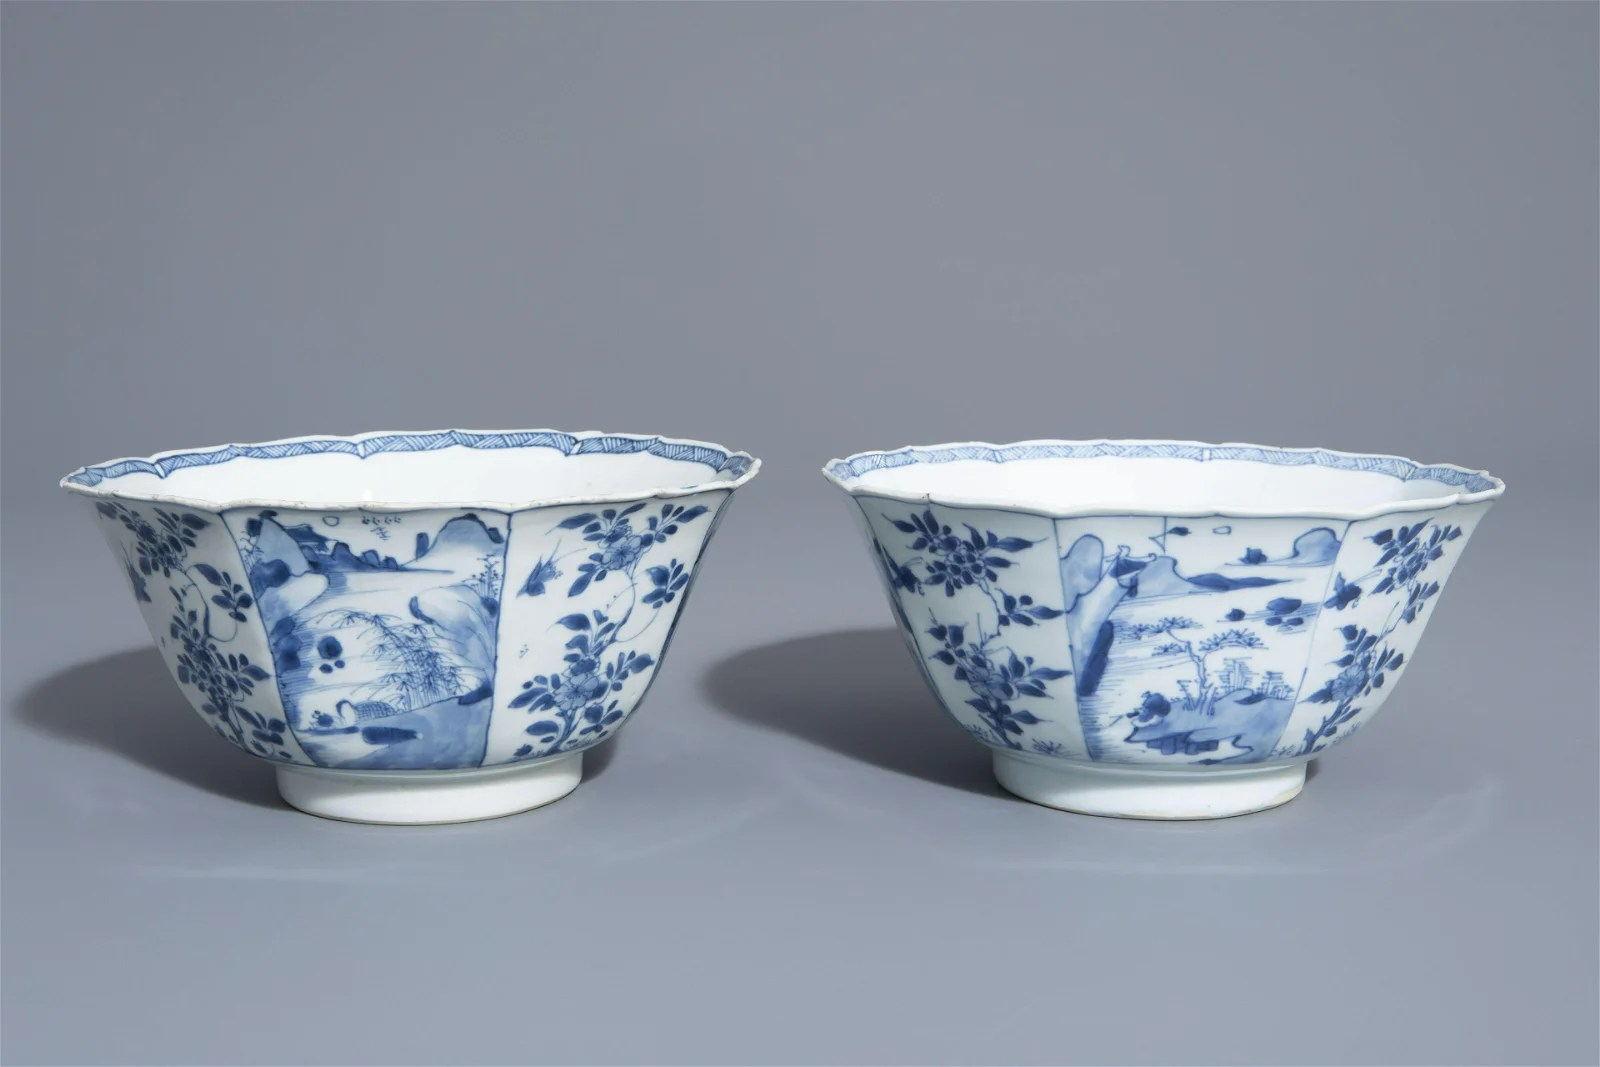 A pair of Chinese blue and white bowls with landscapes